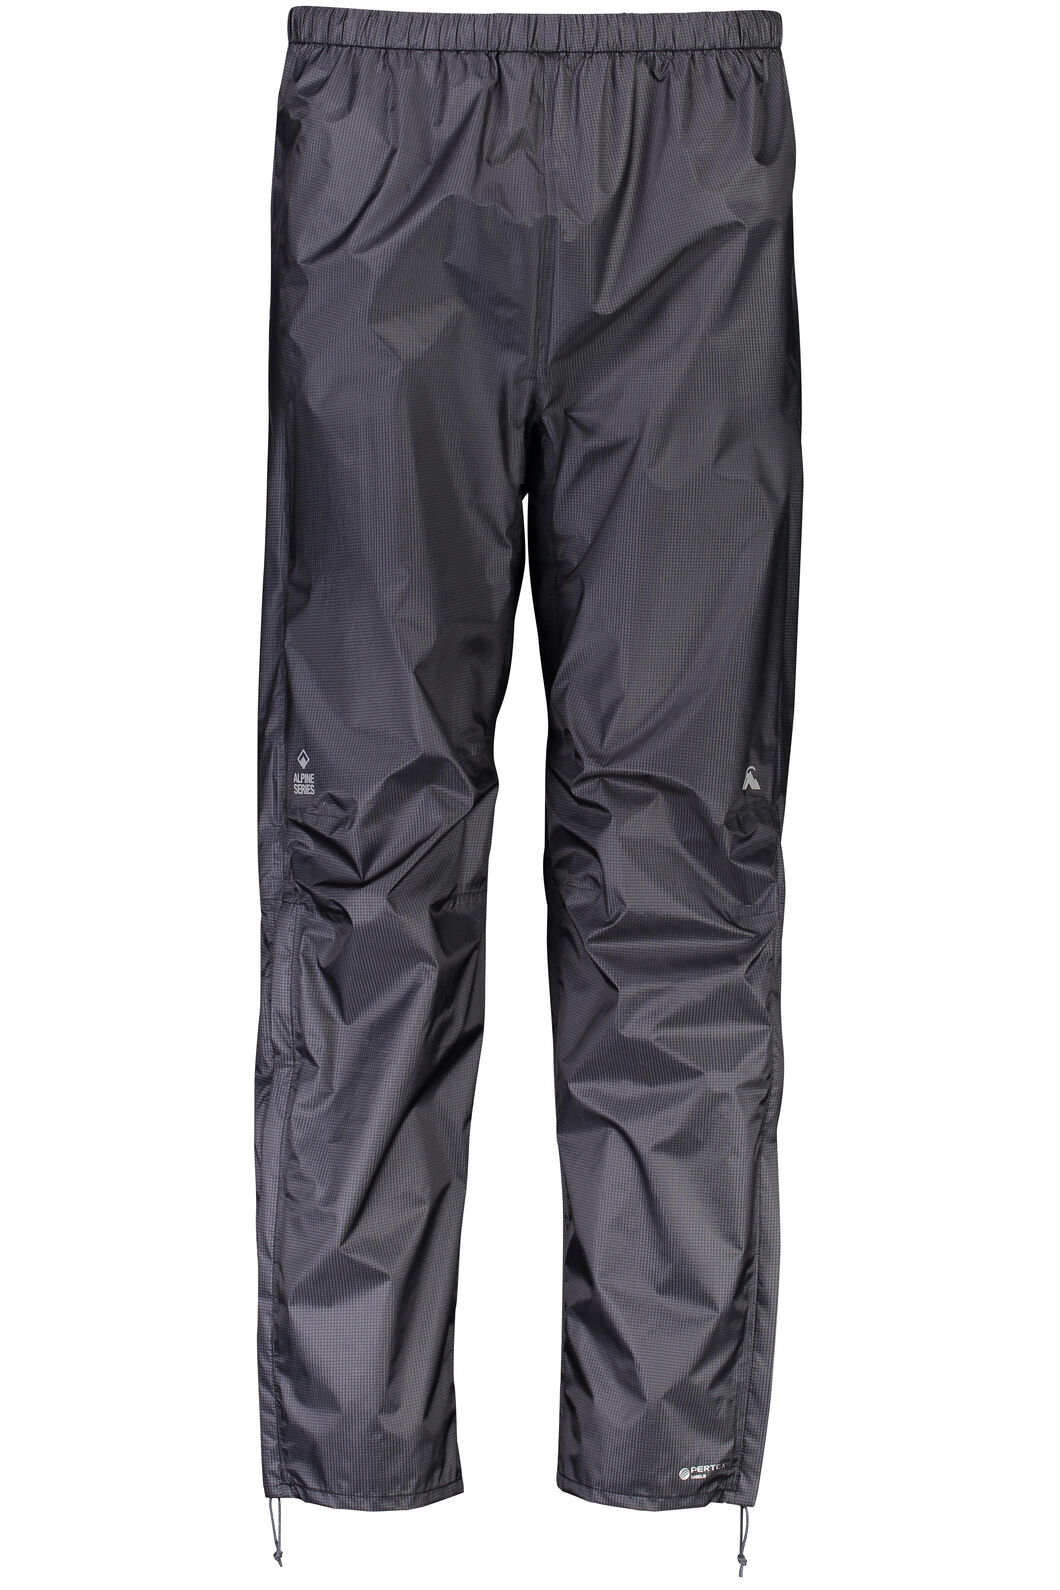 Hightail Pertex Shield® Rain Pants - Men's, Black, hi-res